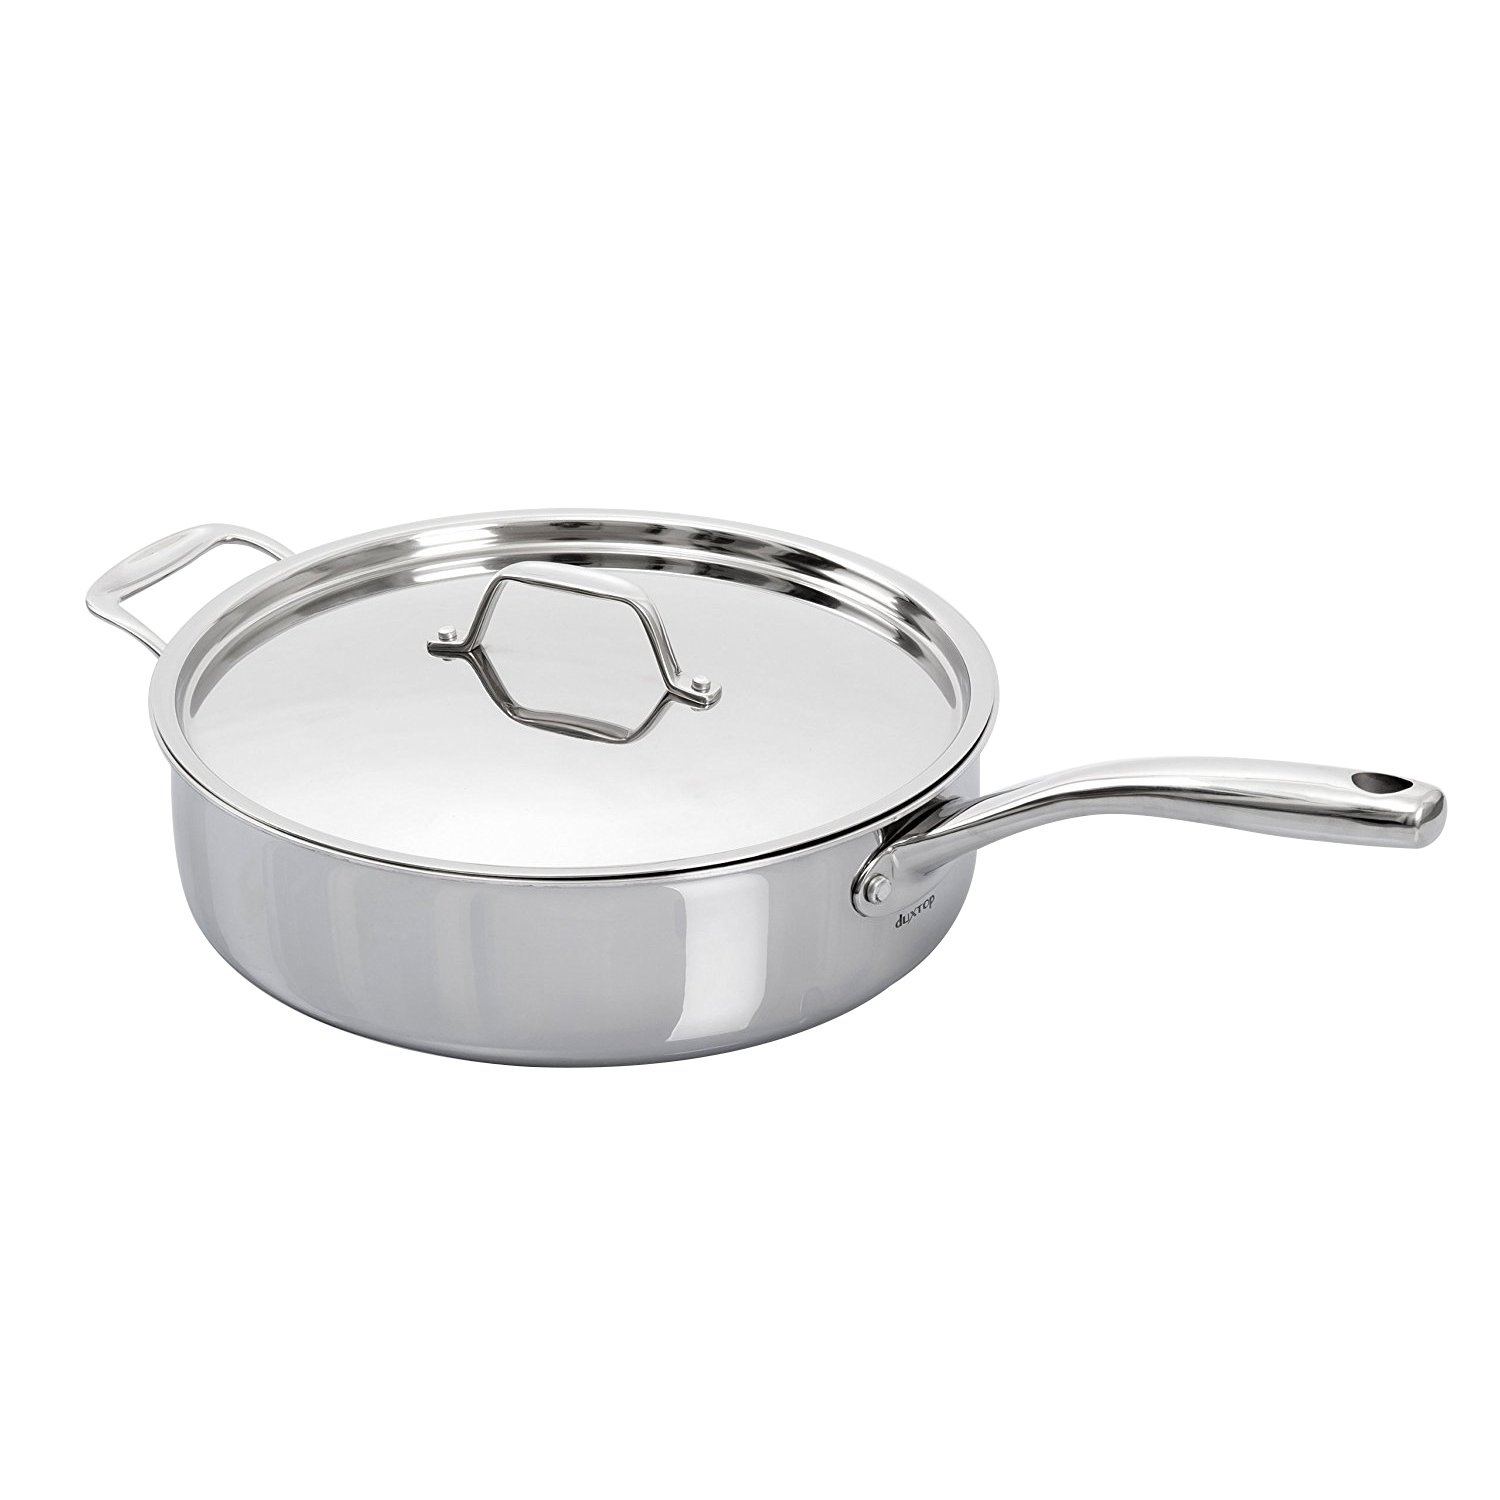 Secura Duxtop Whole-Clad Tri-Ply Stainless Steel Induction Ready Premium Cookware with Lid, 3Qt Saute Pan